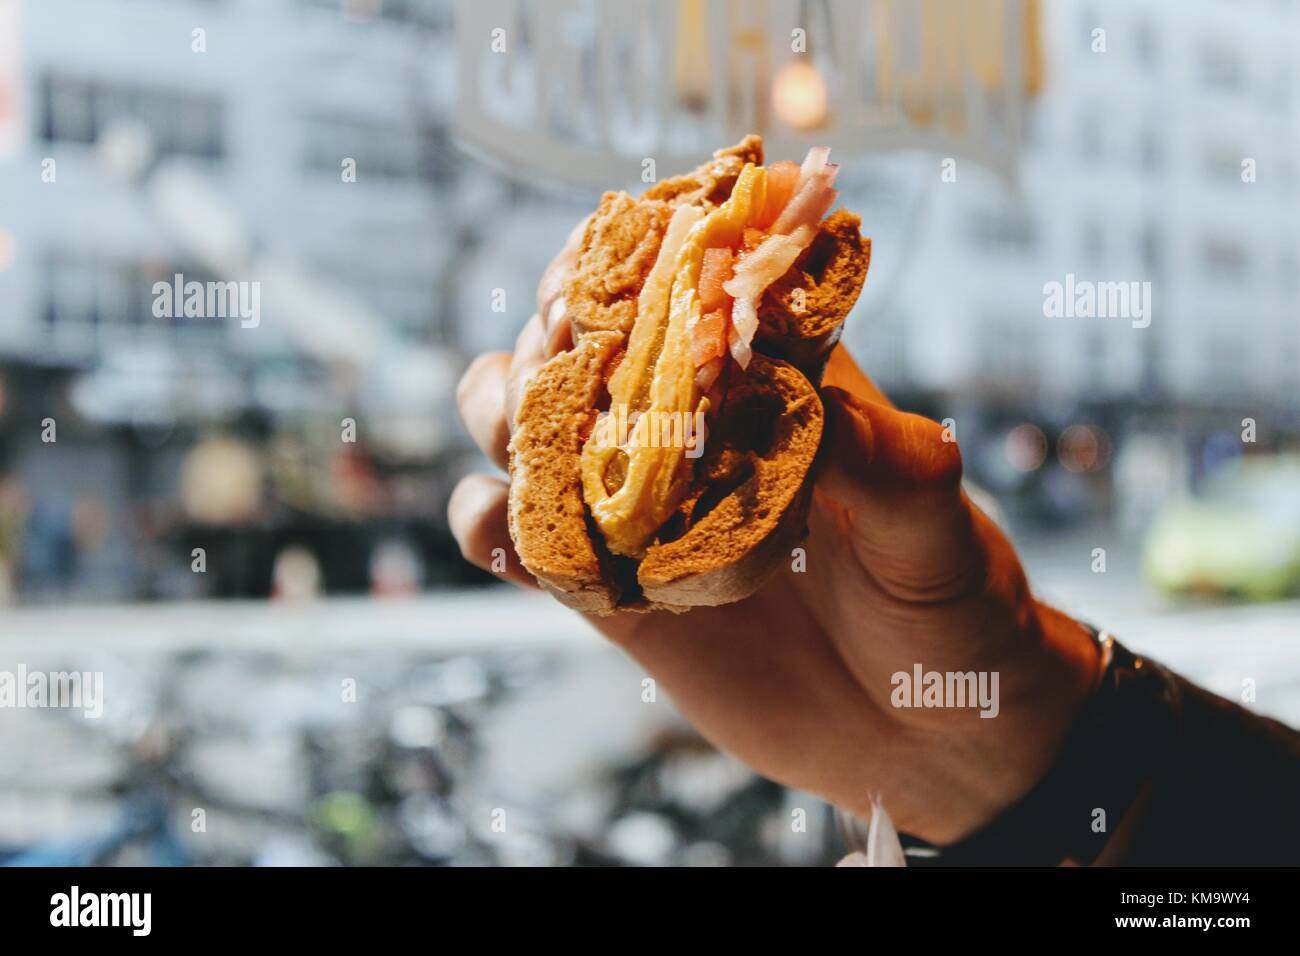 NYC Bagel Close up - Stock Image